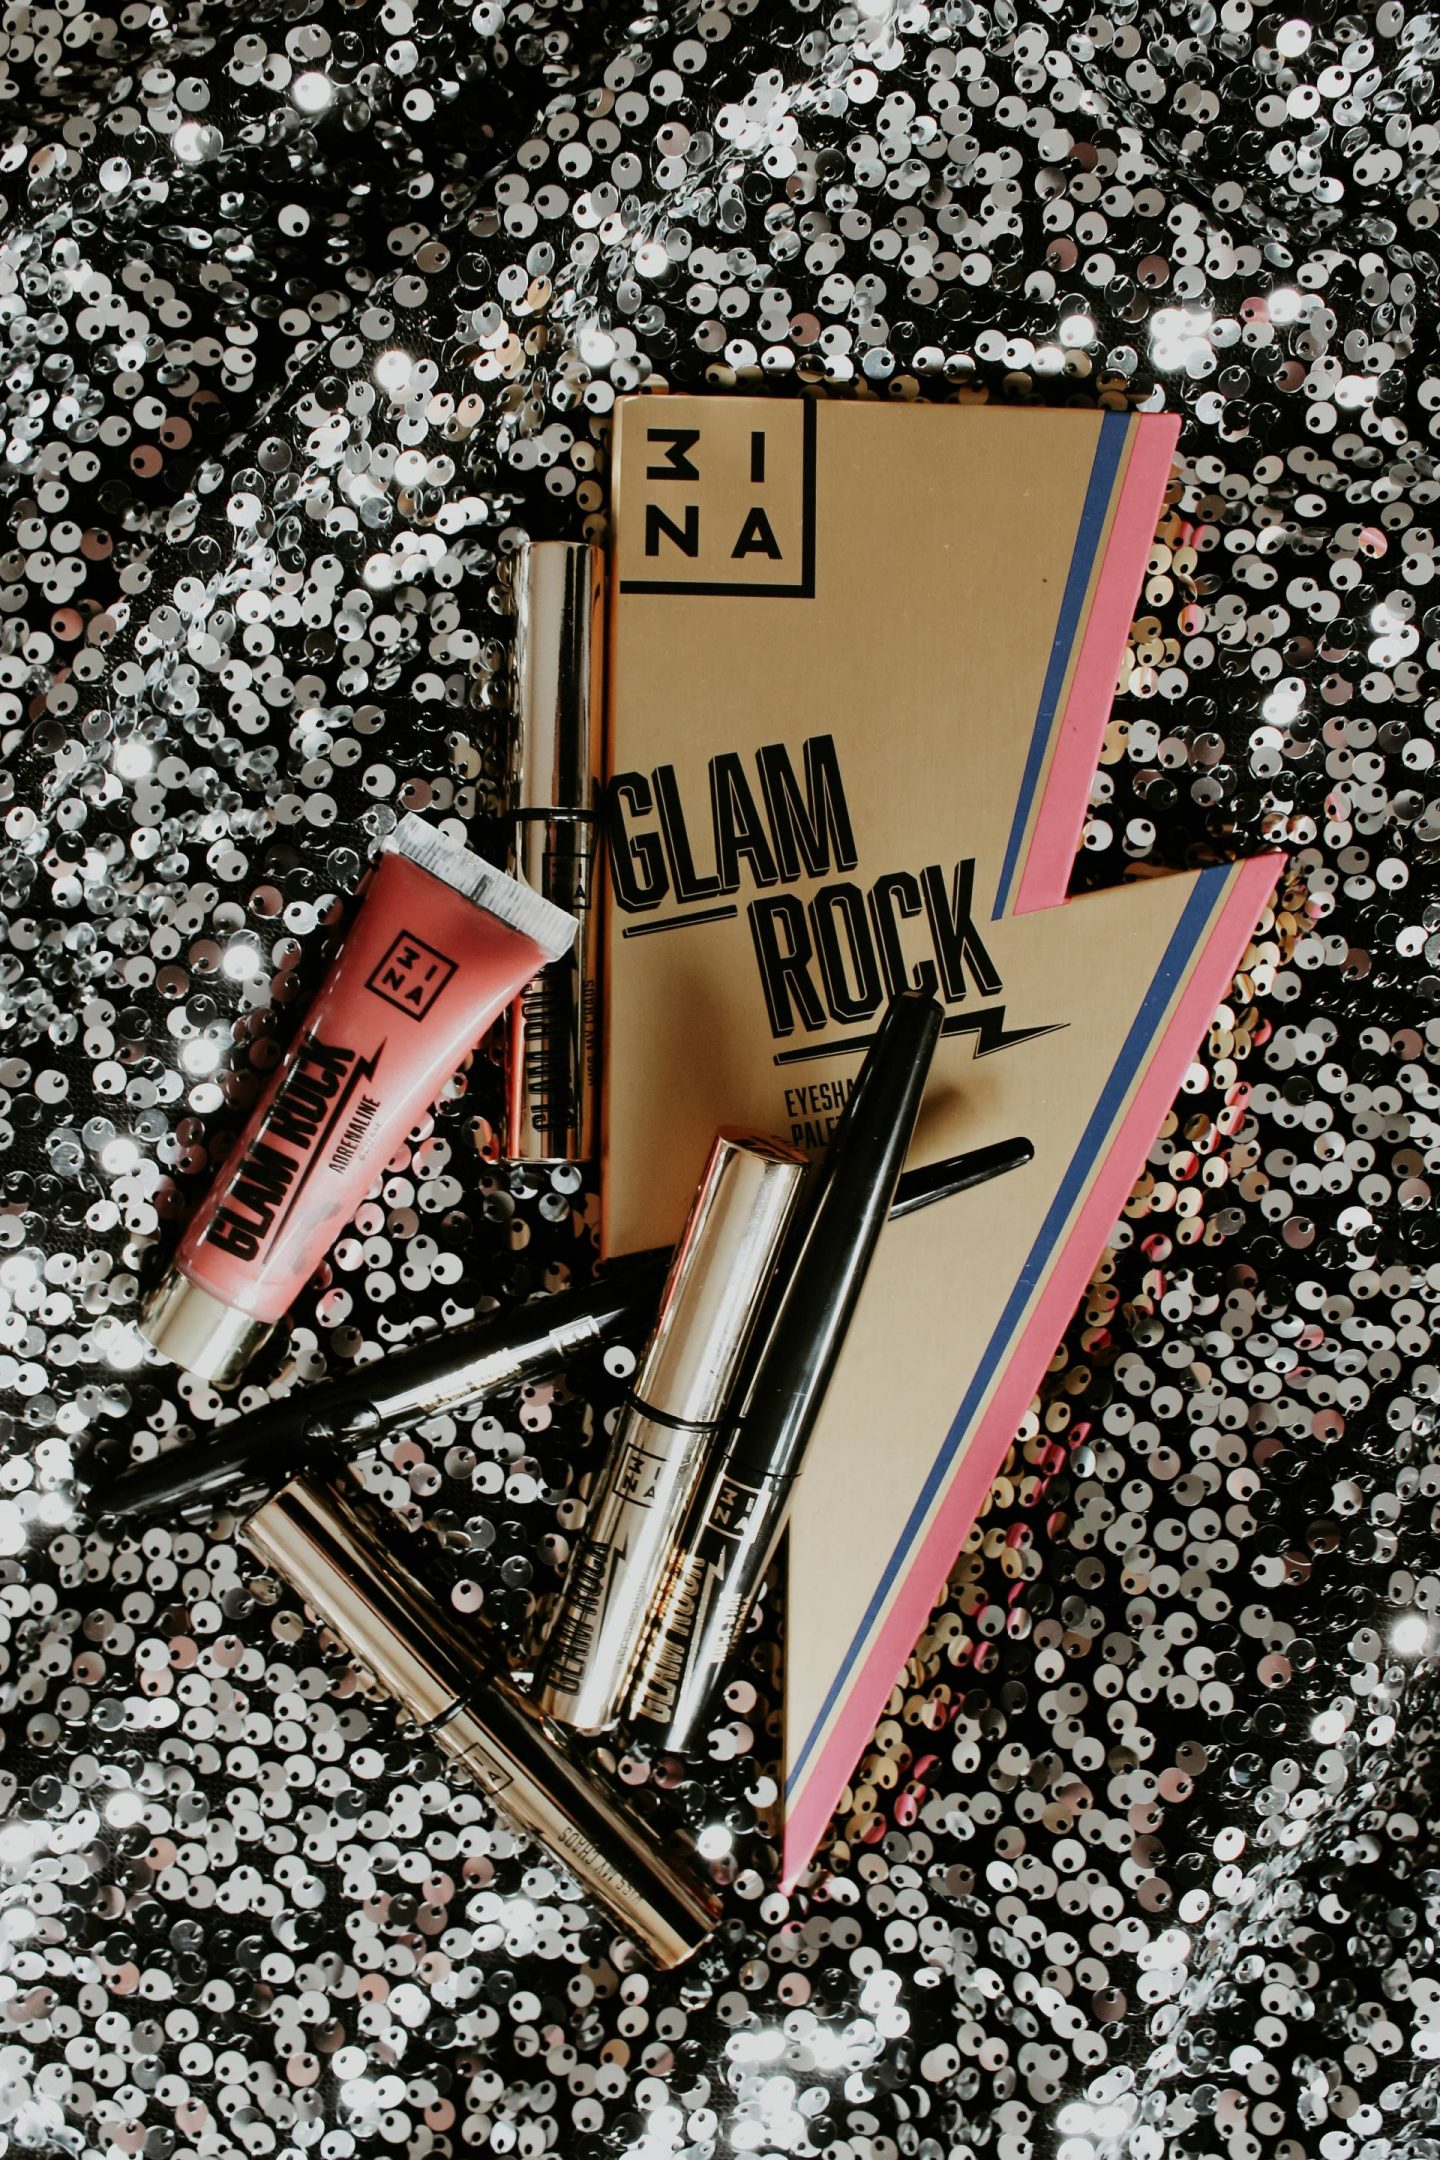 3INA Glam Rock collection